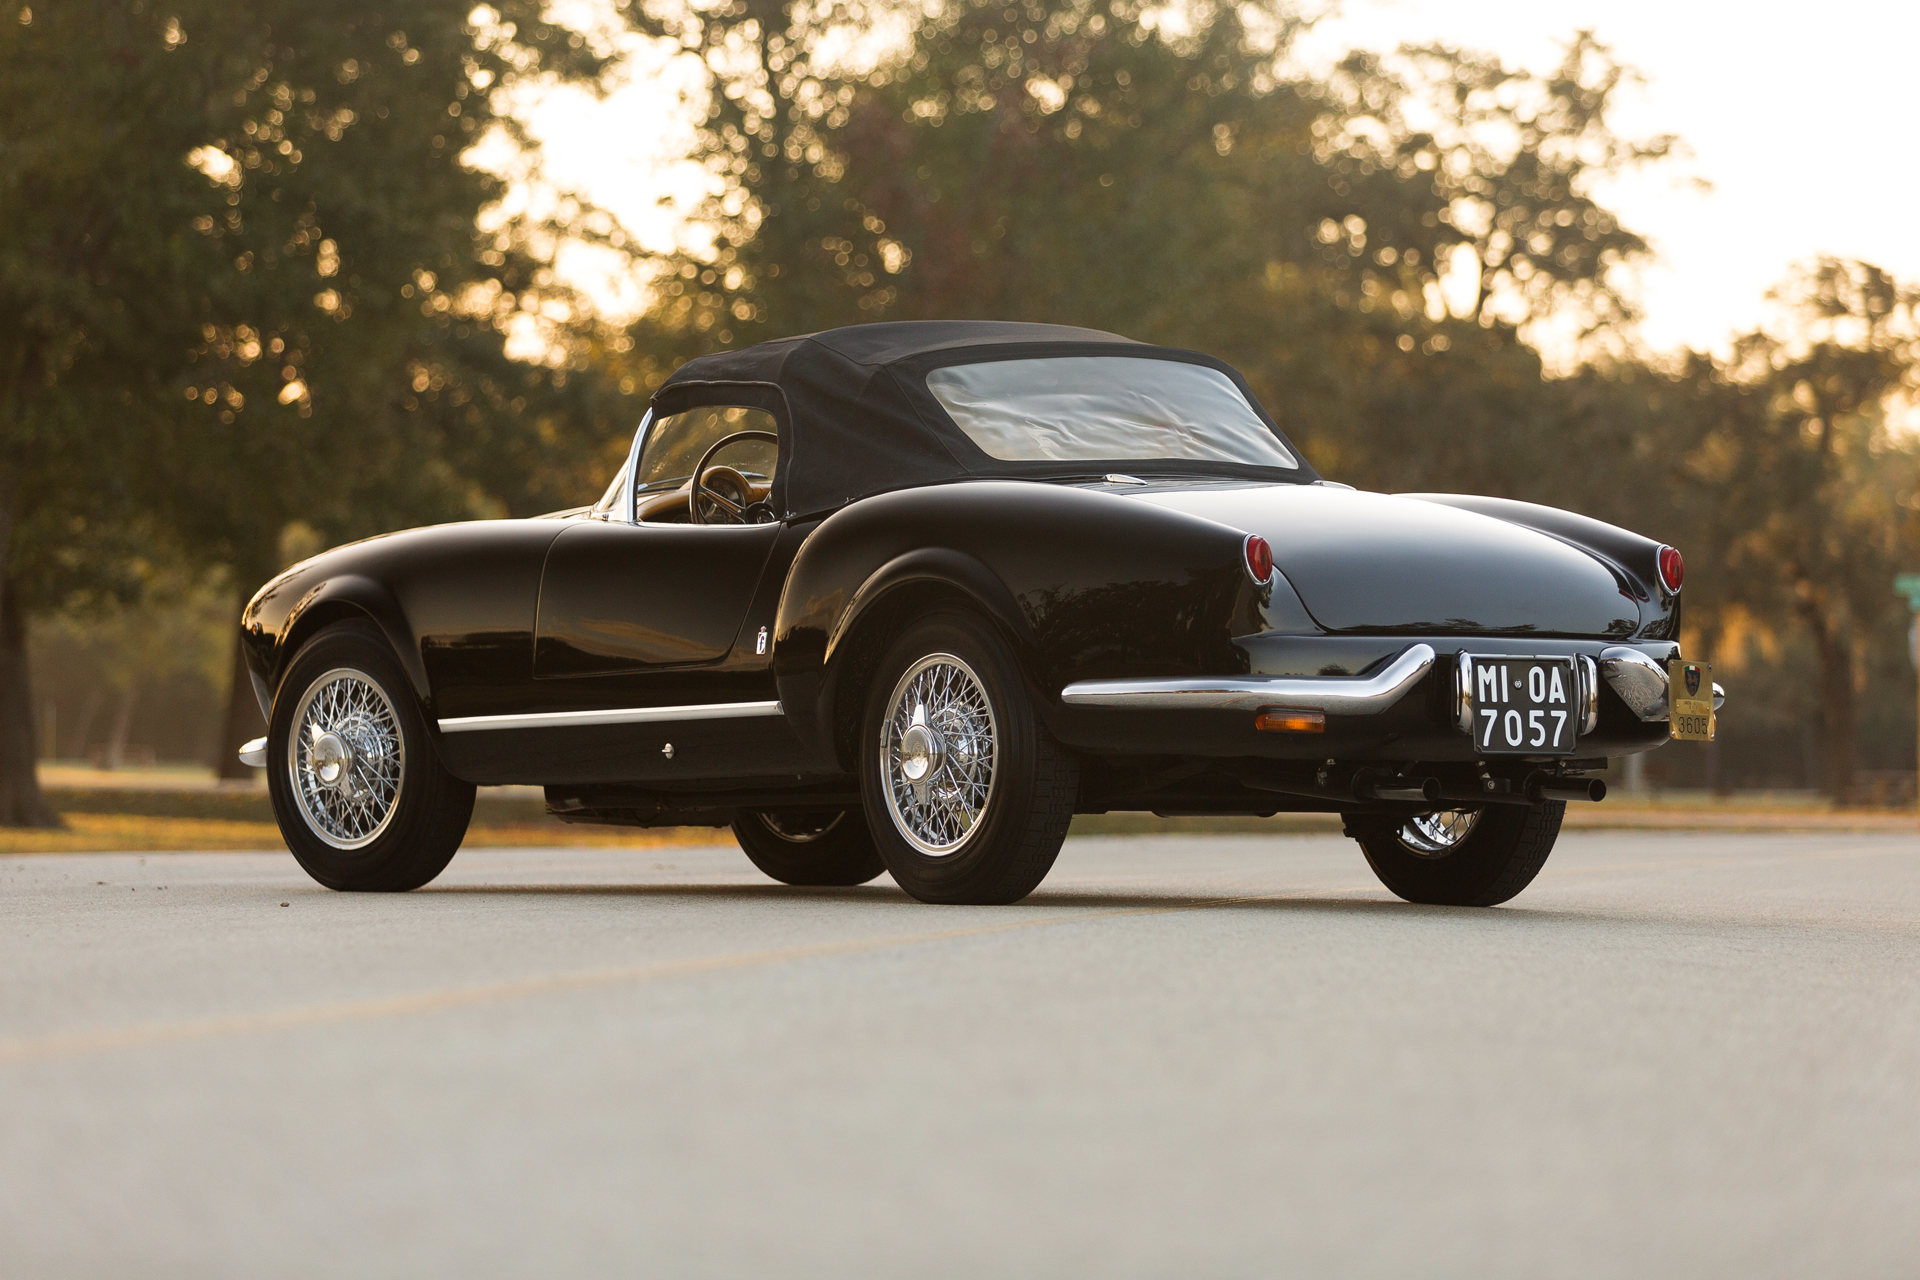 This Lancia Aurelia B24S Spider America's Pininfarina styling is strikingly eye catching from every angle.